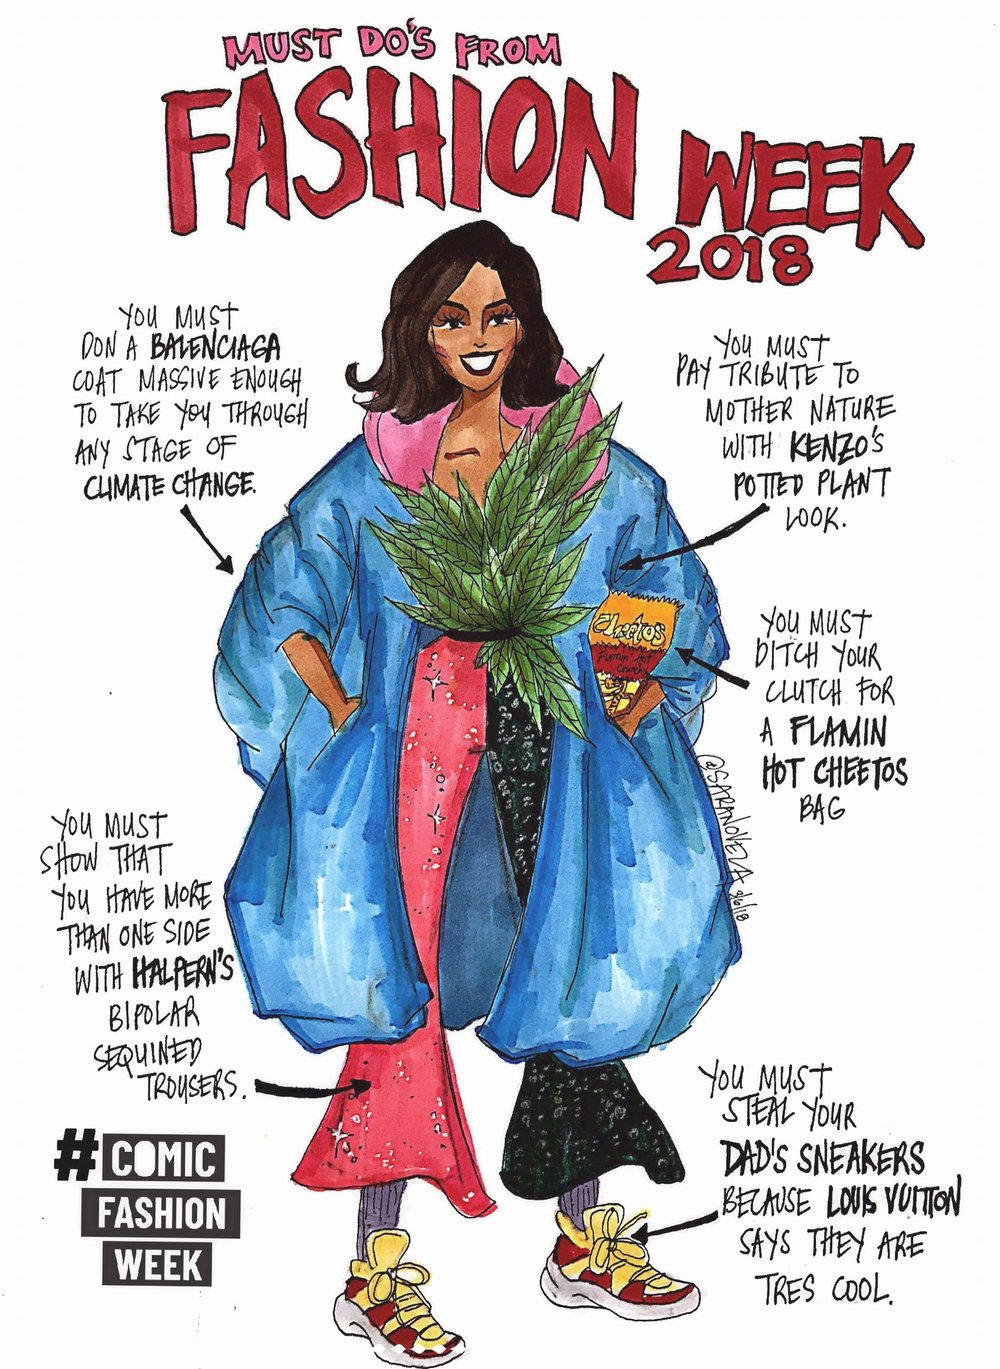 comic fashion week - Two artists, seven days, fourteen comics total poking fun at Fashion Week Fall/Winter 2018. A collaboration with Mexico-born, Amsterdam-based fashion journalillustrator Talia Cu.